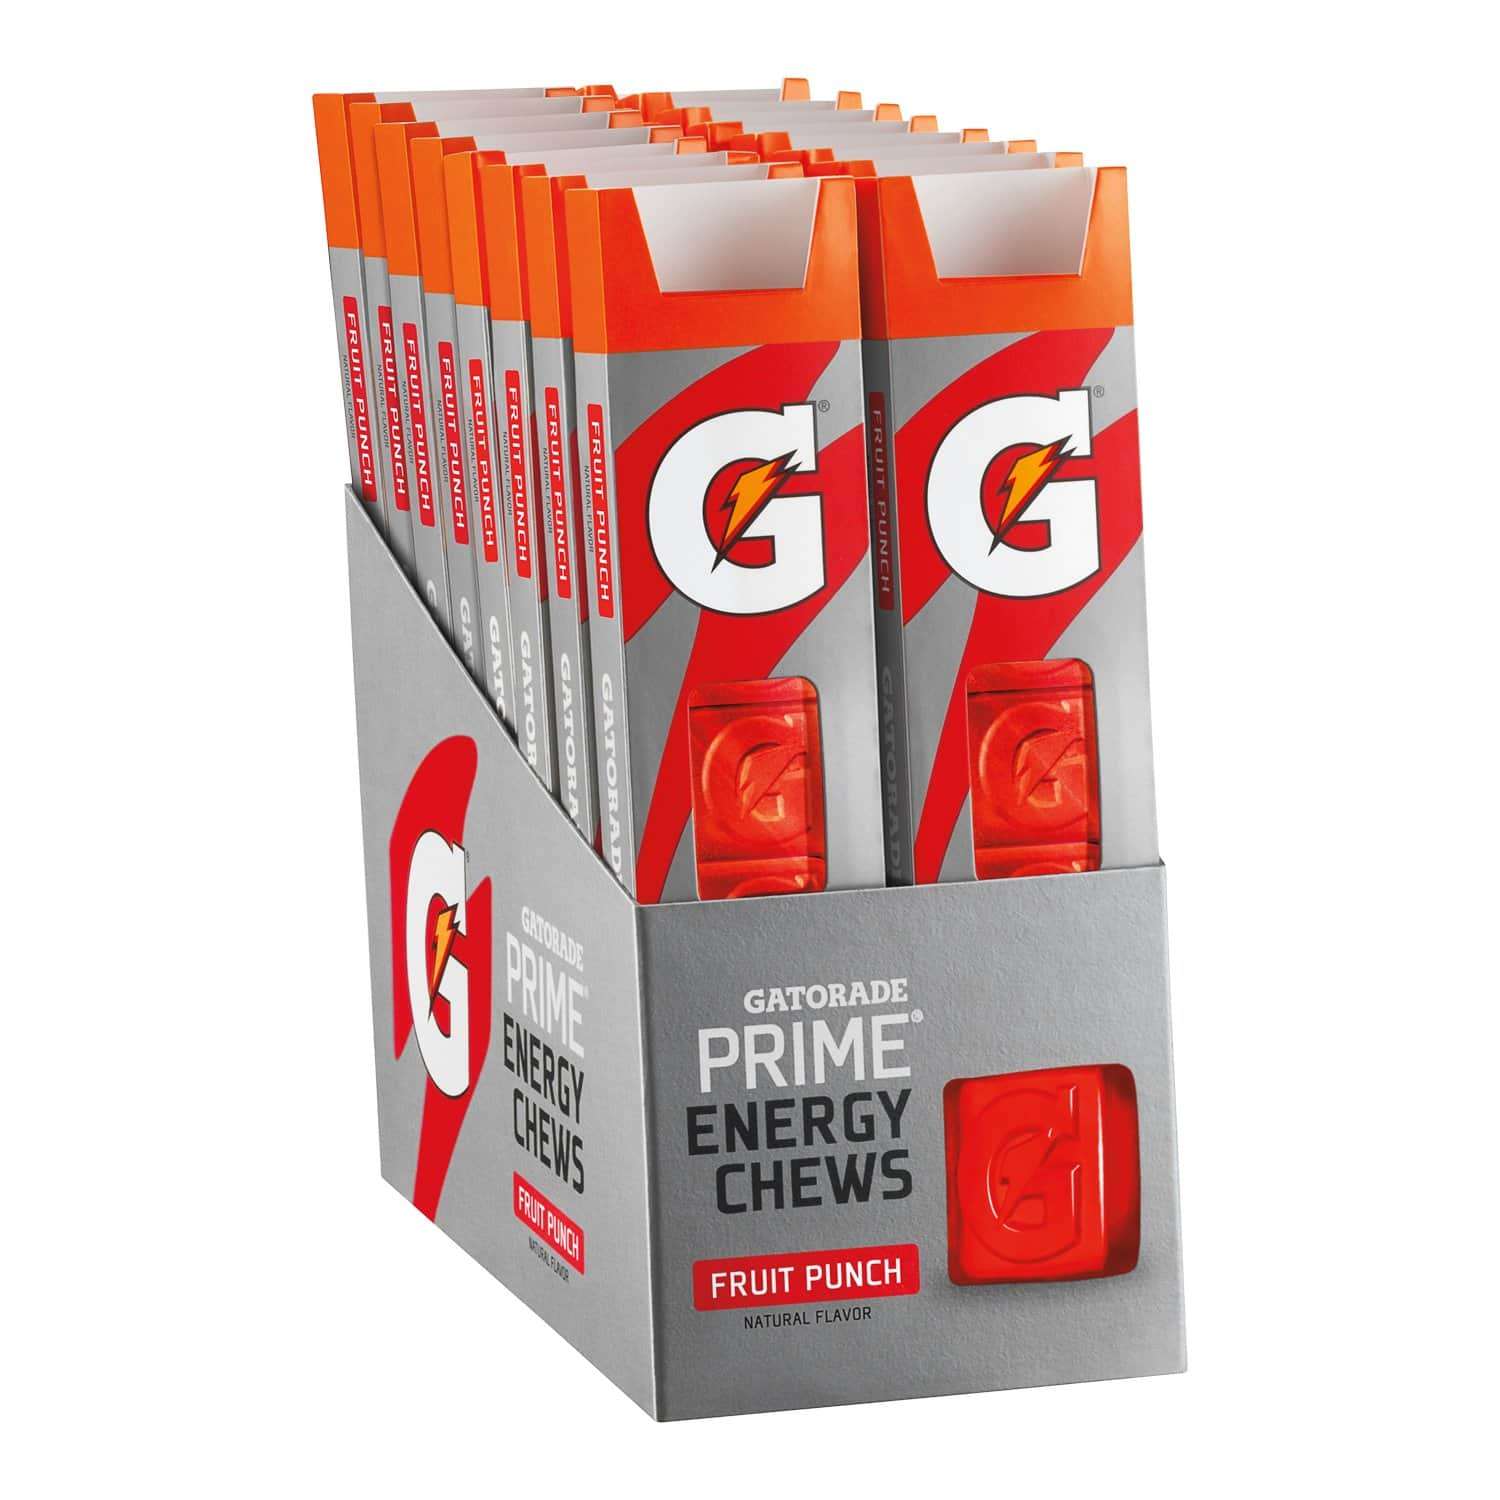 16-Ct. Gatorade Prime Energy Chews (Fruit Punch or Cool Blue) $11.88 5% or $10.29 15% AC w/s&s